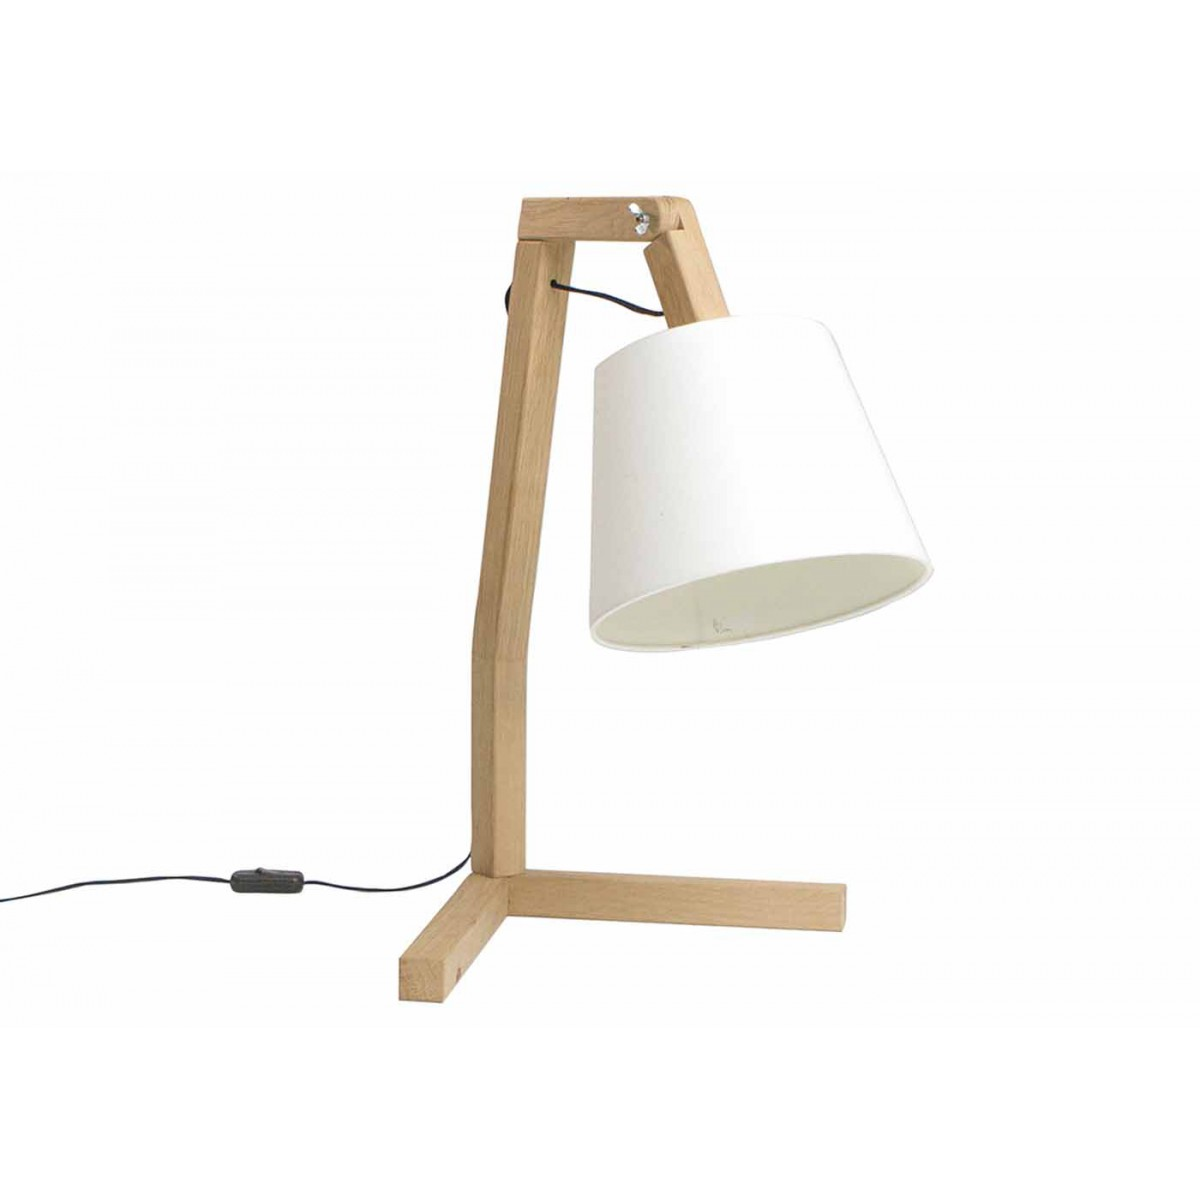 Helline De Salon Lampe Pied Design Cool Blog D Co D Helline Lampe Salon